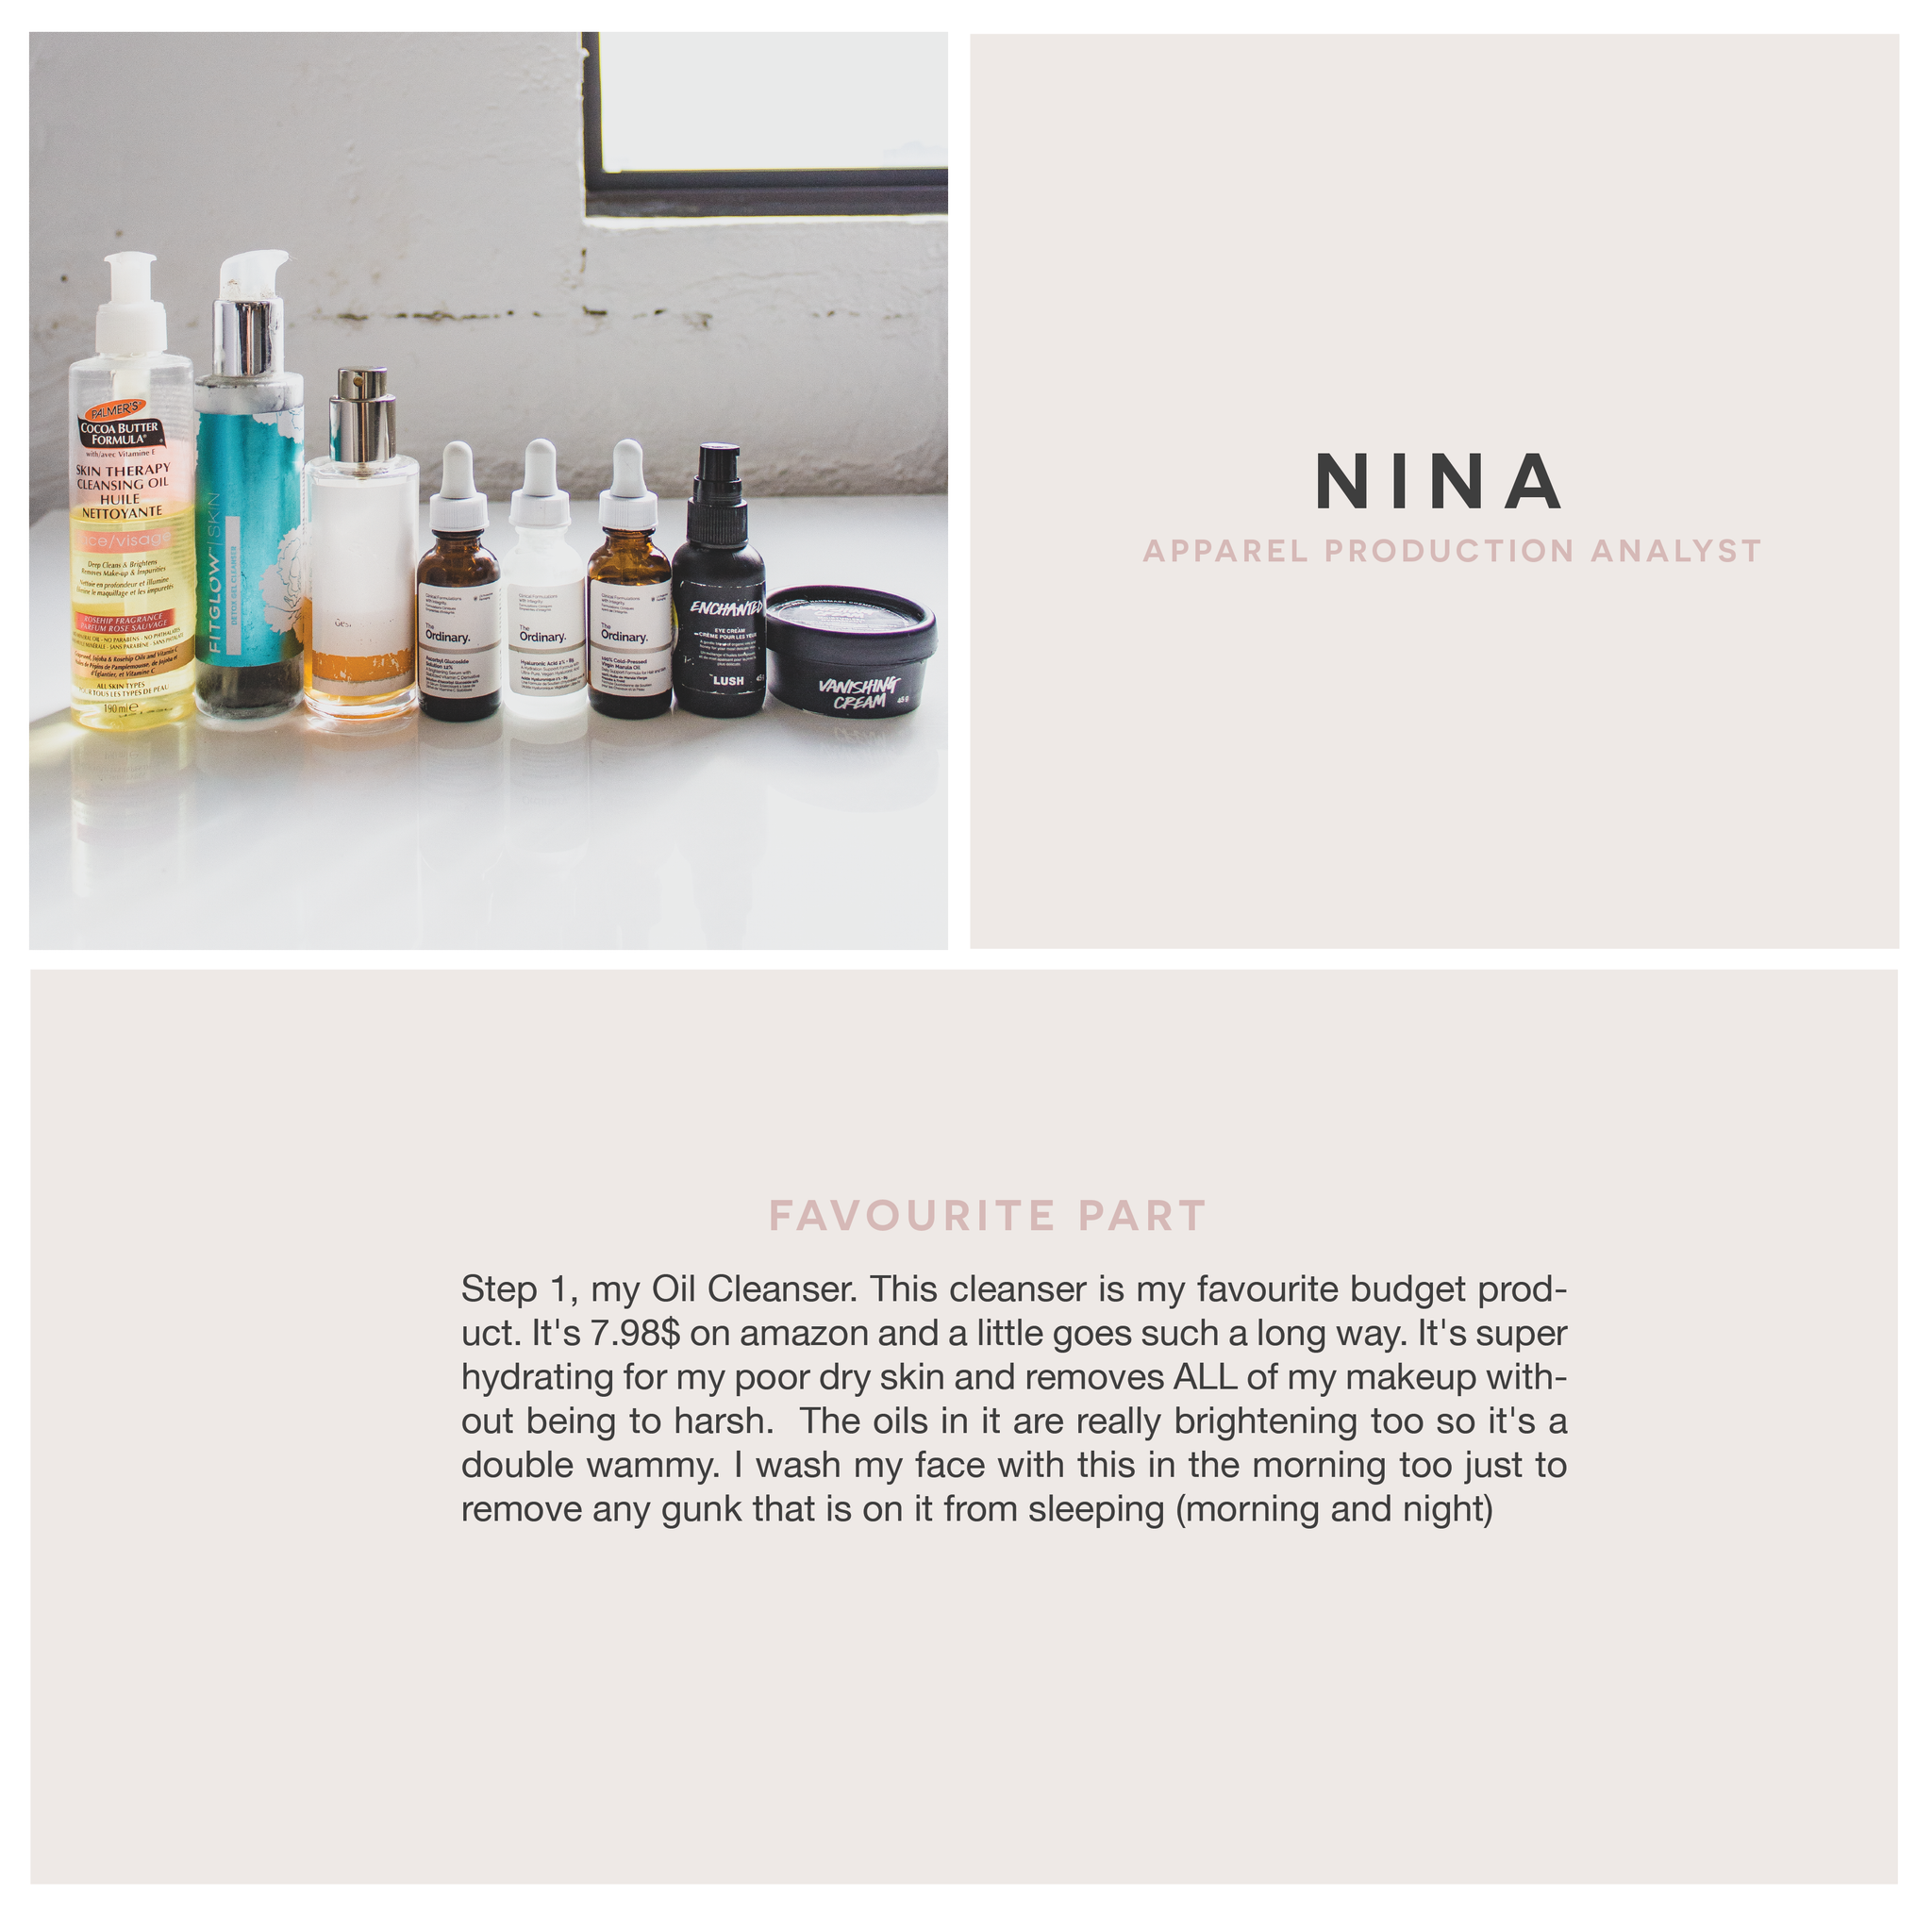 Nina Apparel Production analyst : Favourite Part : Step 1, my Oil Cleanser: remove makeup at night - this cleanser is my favourite budget product. It's 7.98$ on amazon and a little goes such a long way. It's super hydrating for my poor dry skin and removes ALL of my makeup without being to harsh.  The oils in it are really brightening too so it's a double wammy. I wash my face with this in the morning too just to remove any gunk that is on it from sleeping (morning and night)